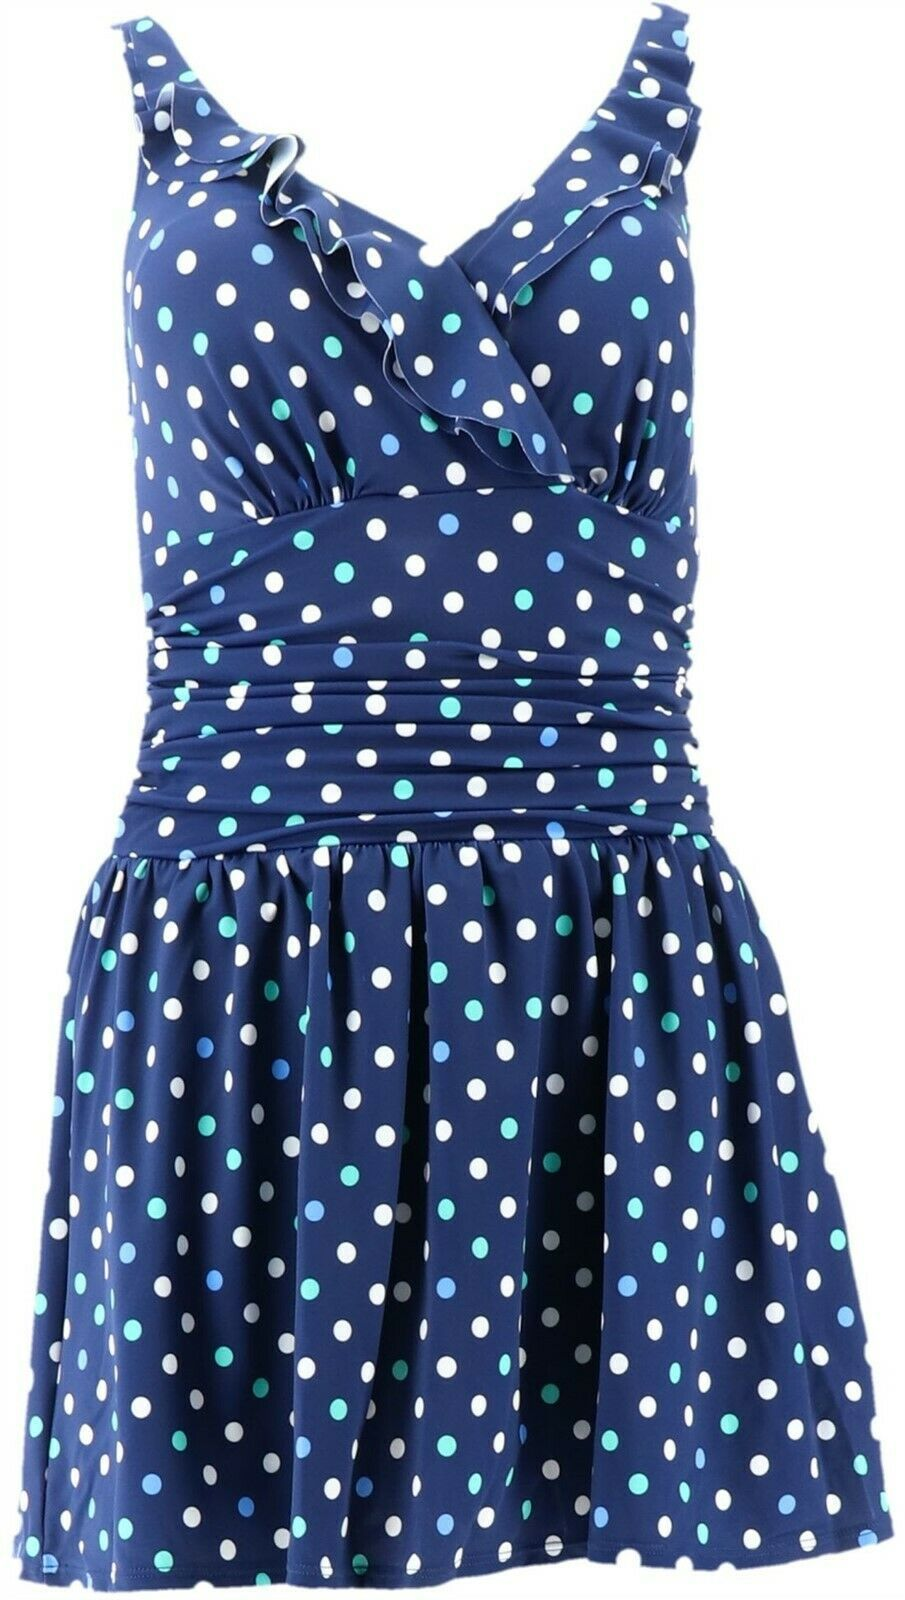 Primary image for Denim & Co Beach Double Ruffle Swim Dress Navy Dot 10 NEW A303732